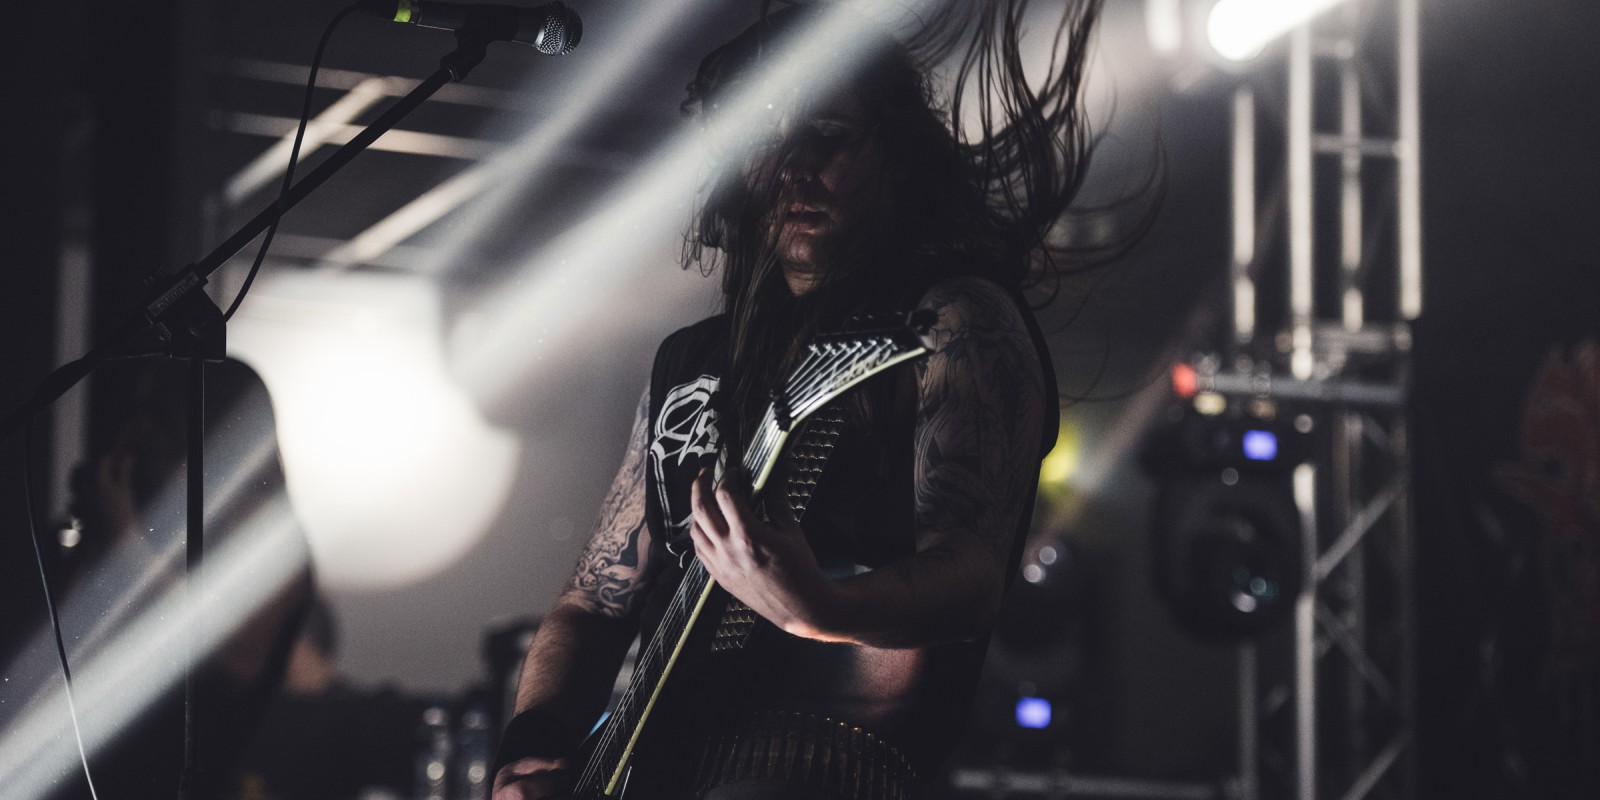 Photos from the latest live show of Monster Energy band Suicidal Angels in Athens Greece